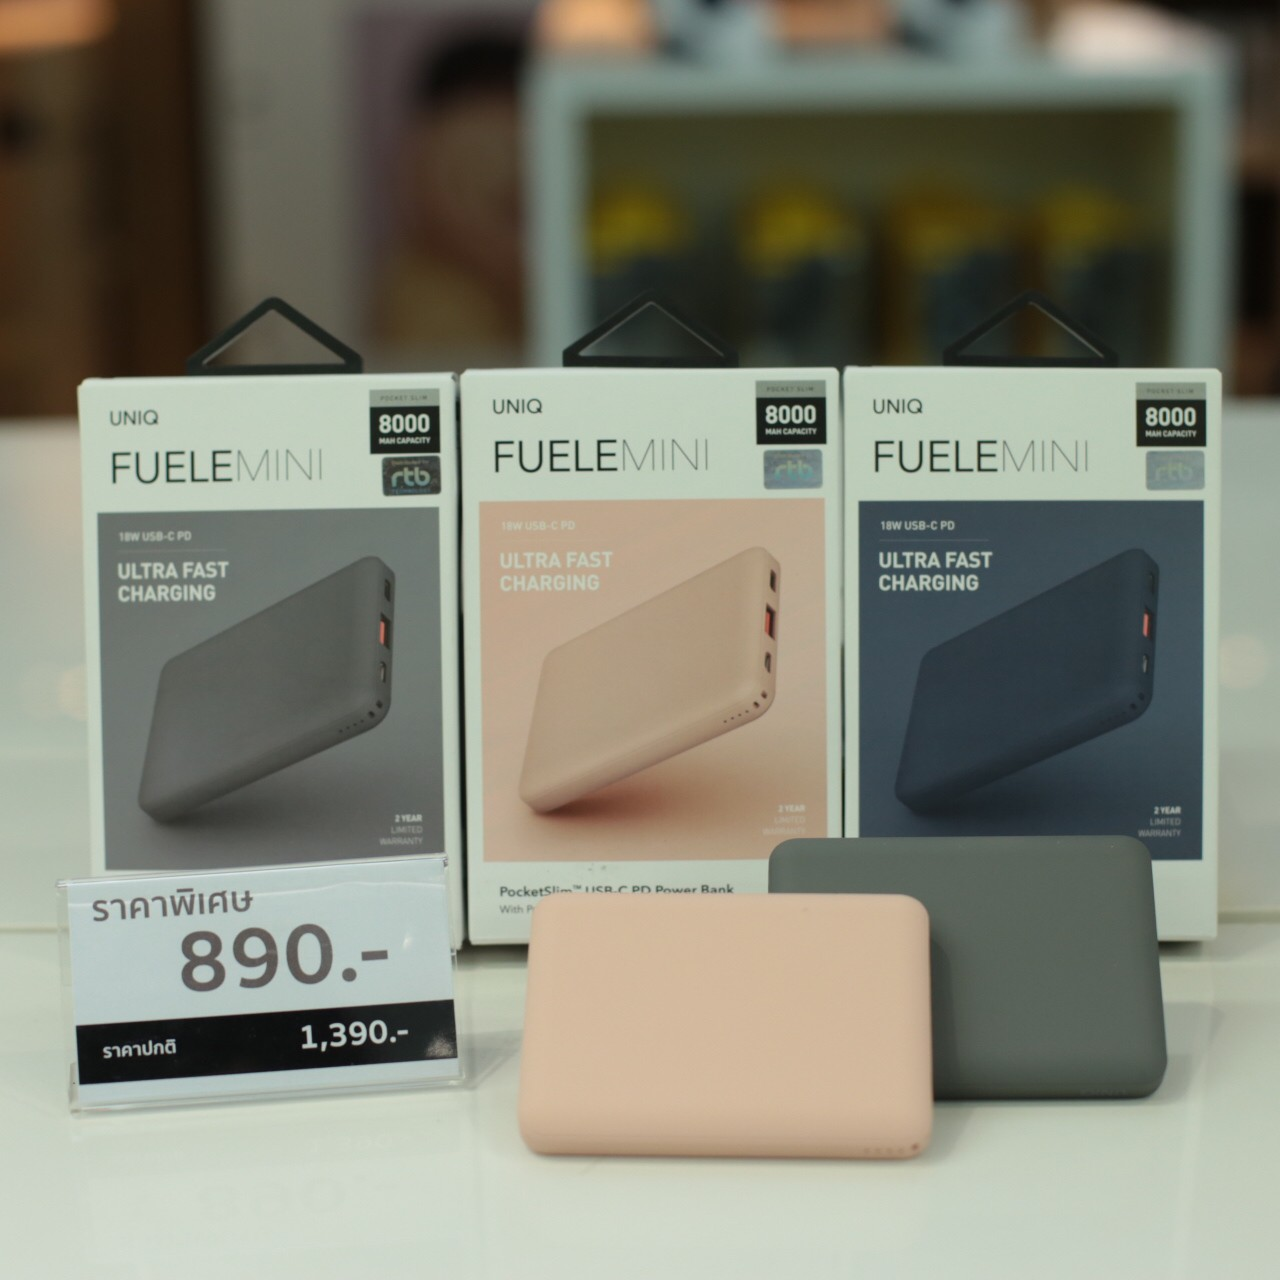 Pic_Uniq Power Bank รุ่น Fuele Mini 8000mAH USB-C PD Pocket